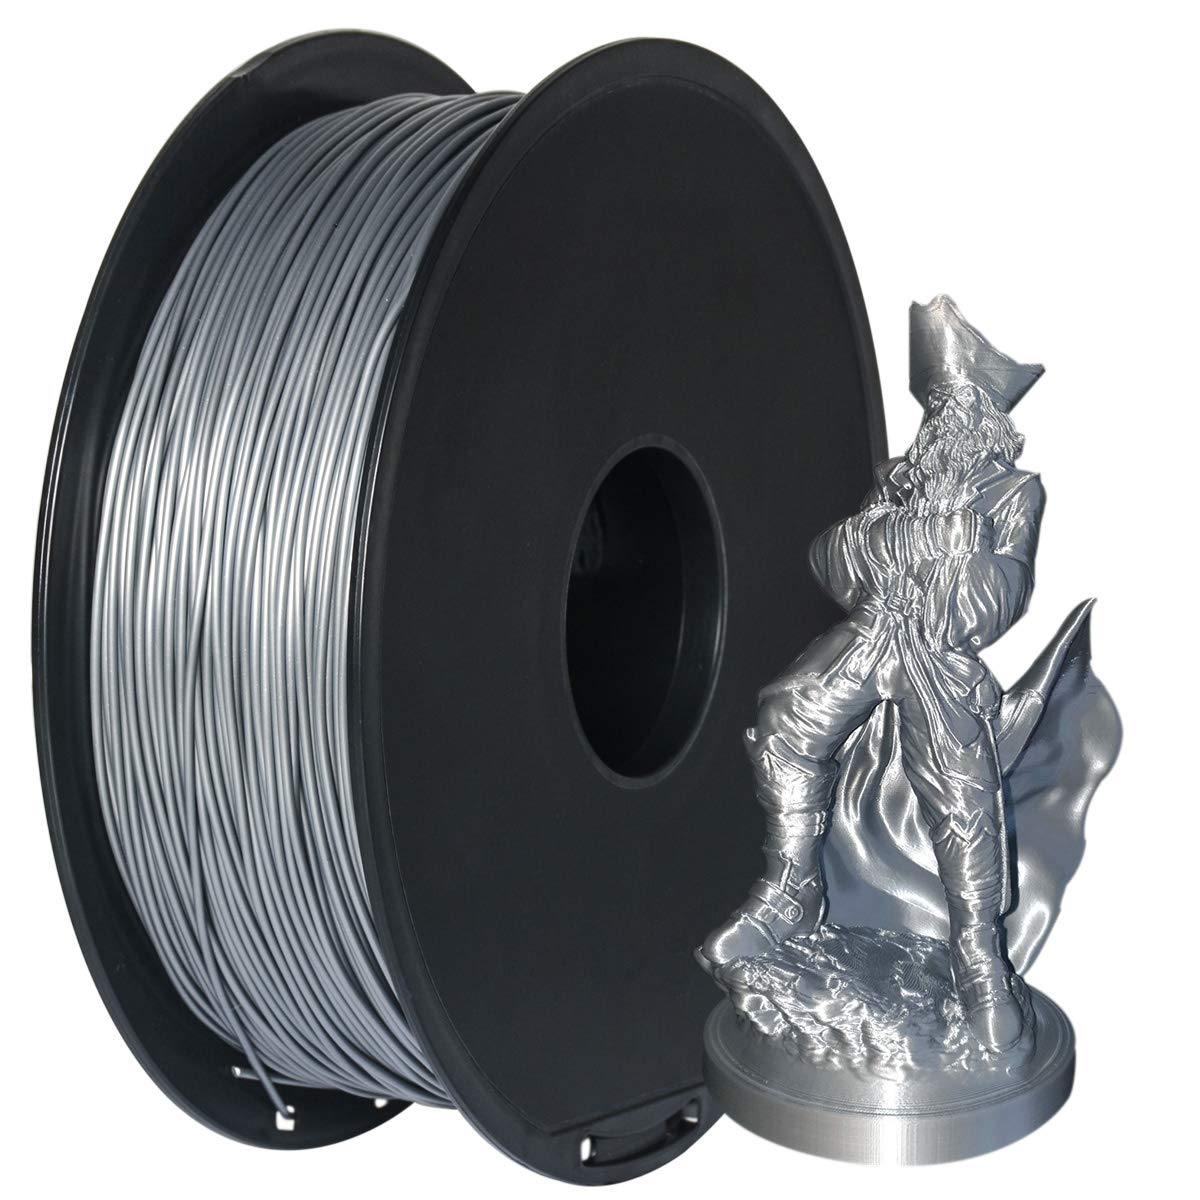 GIANTARM Filament PLA 1.75mm Imprimante 3D PLA Filament 1.75mm 1kg Bobine Noir /¡/­